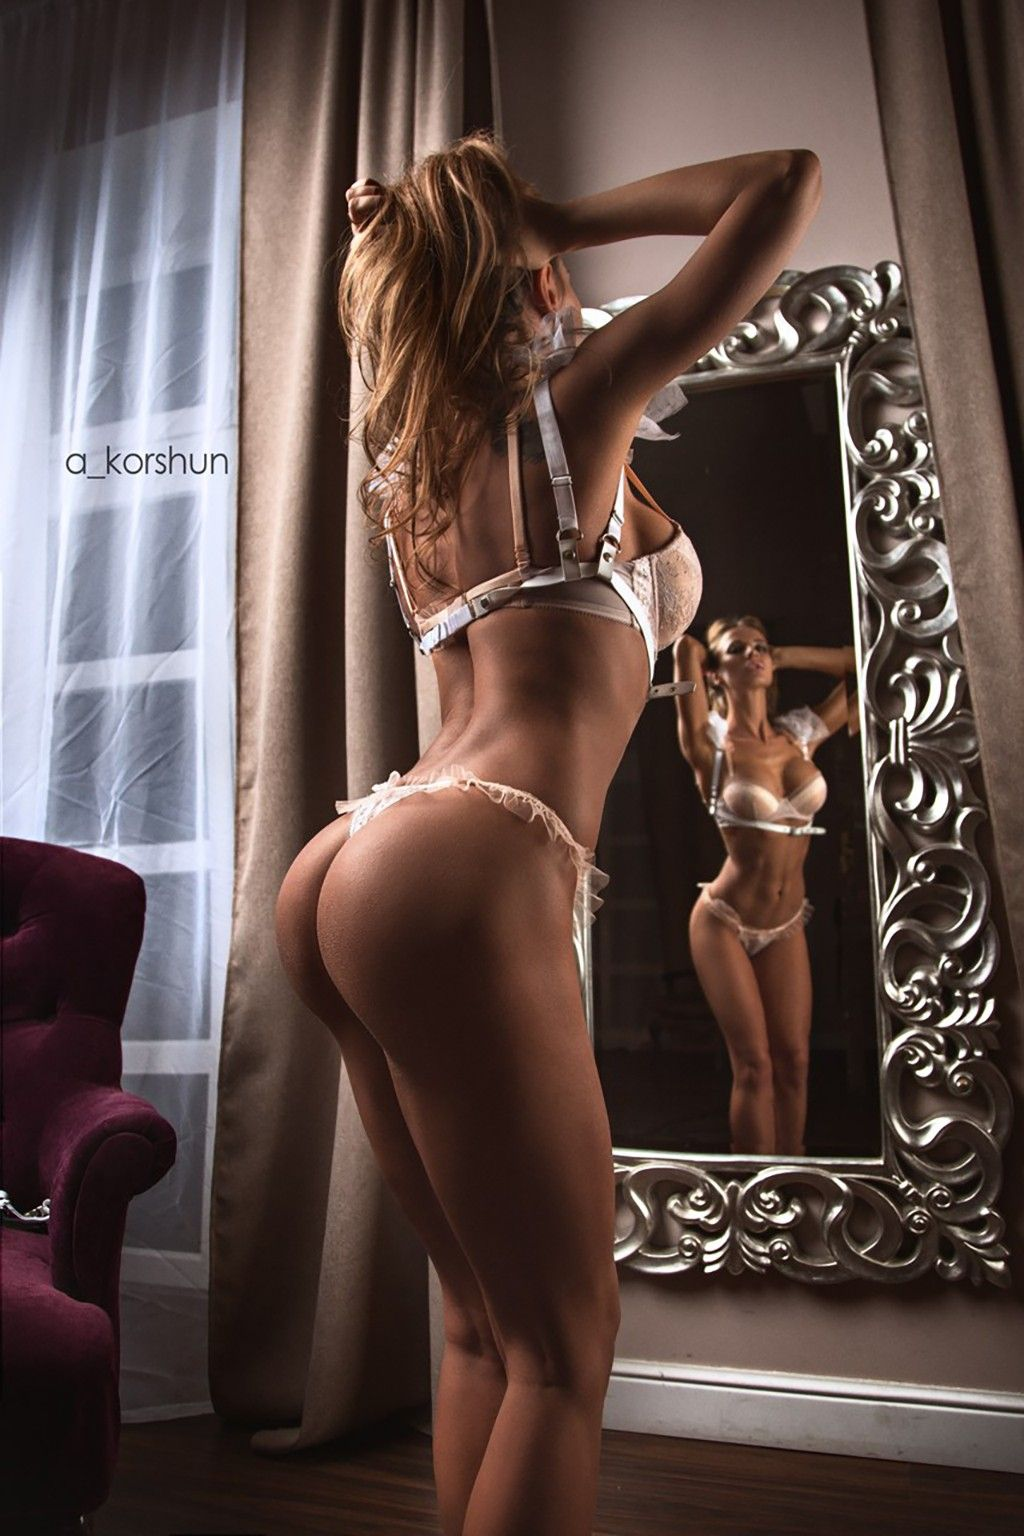 Adriana Cernanova. 2018-2019 celebrityes photos leaks! naked (58 photos), Twitter Celebrity picture